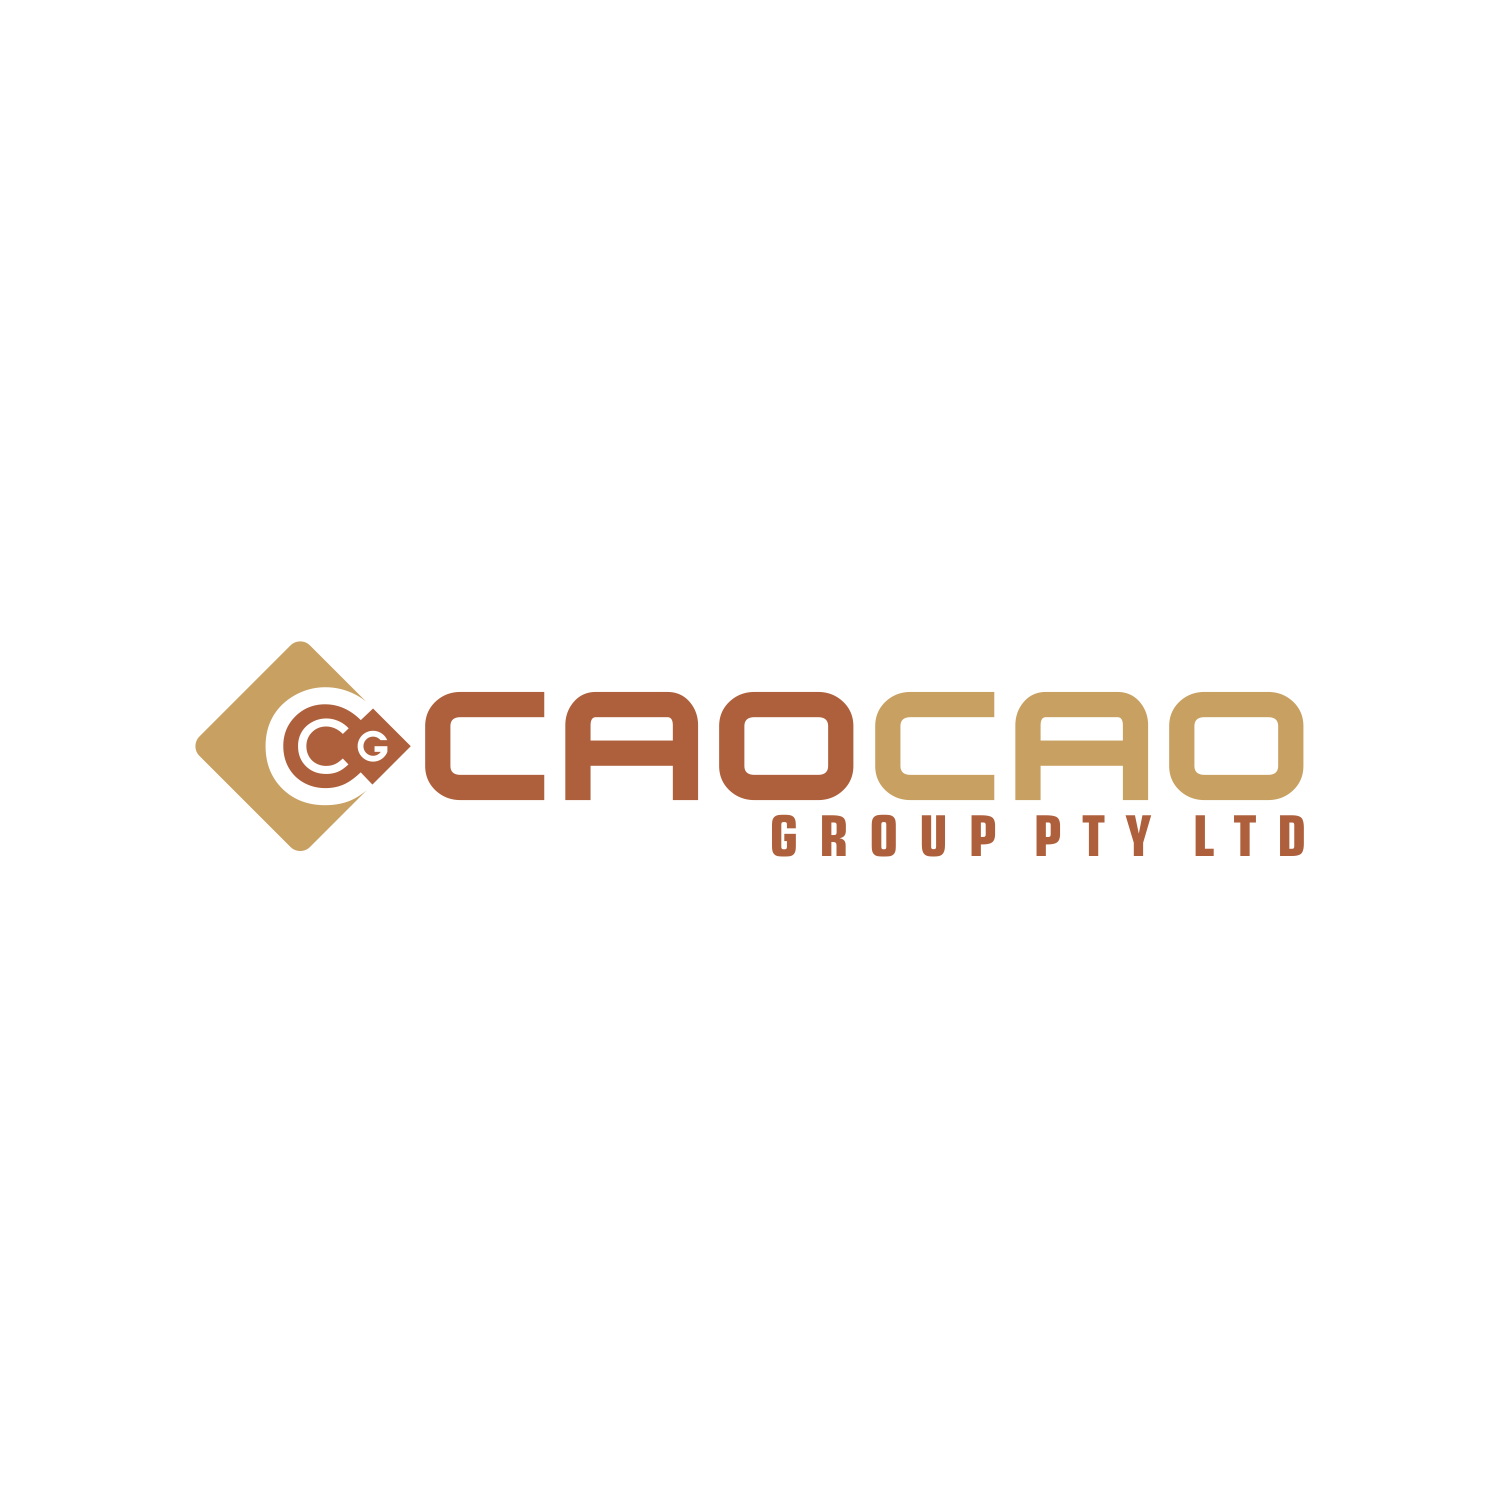 Logo Design by martinz - Entry No. 52 in the Logo Design Contest cao cao group pty ltd Logo Design.